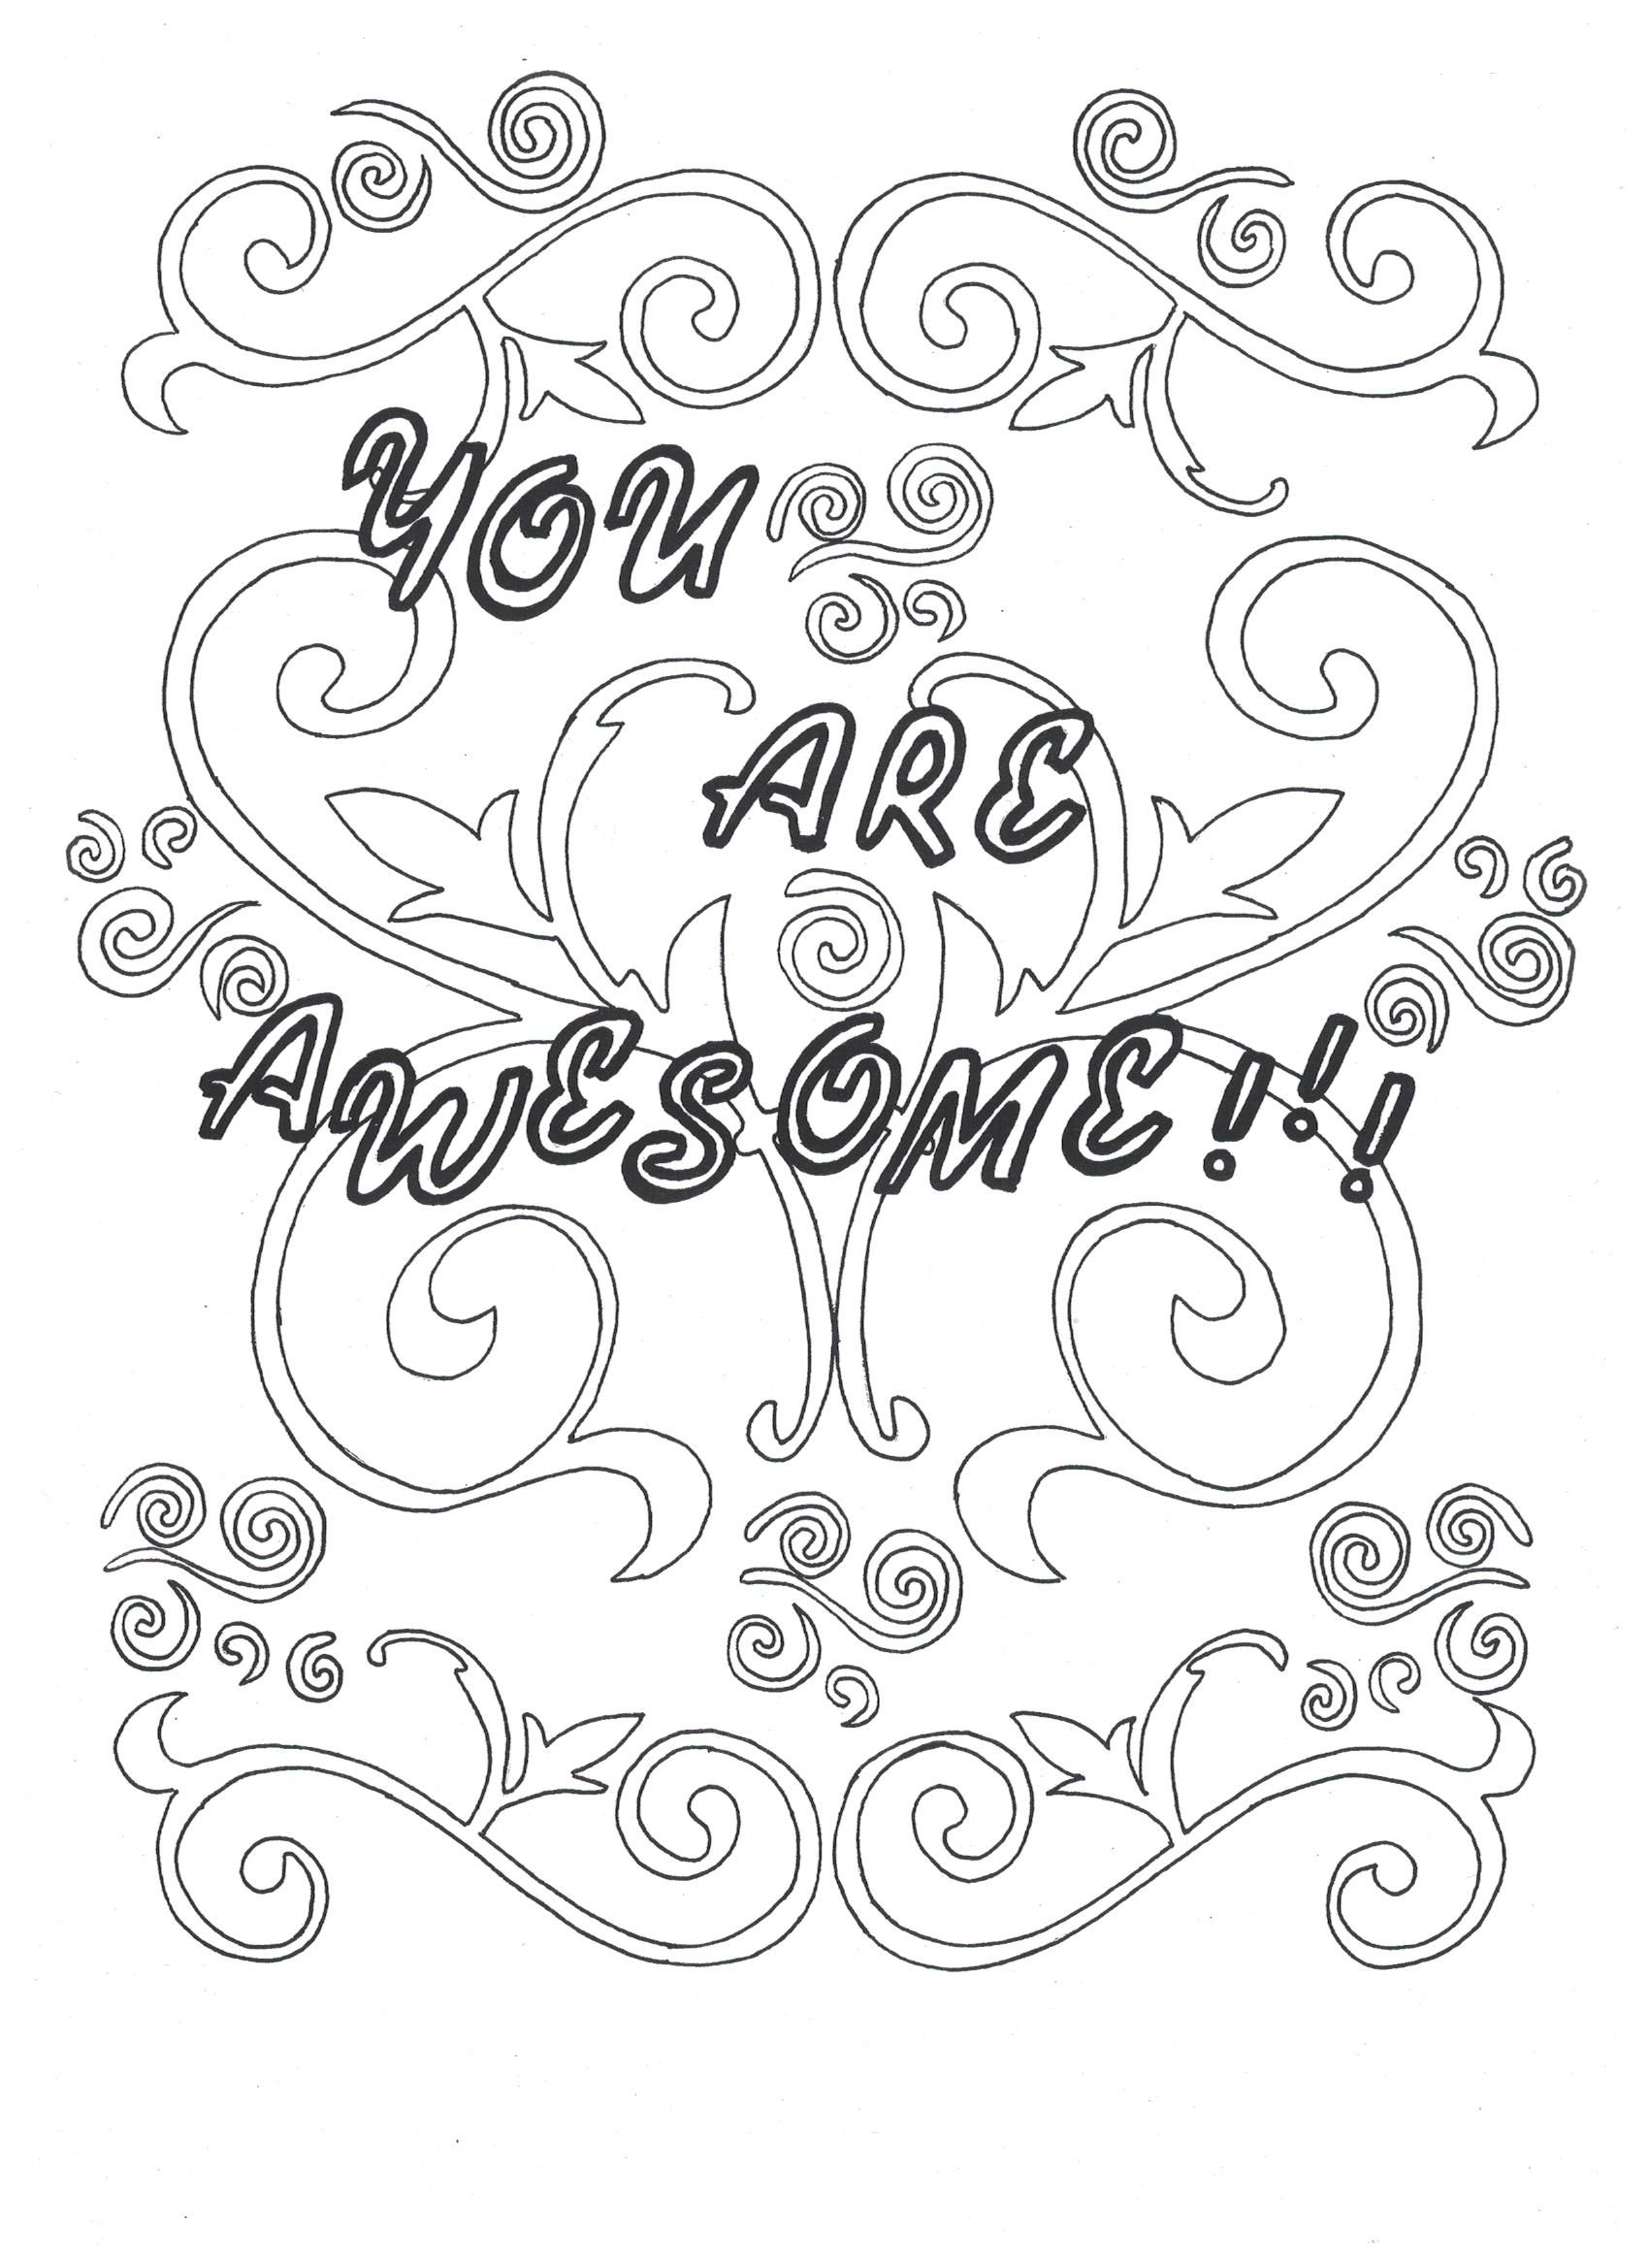 You Are Awesome Coloring Page Click On Link To Download From Etsy Https Www Etsy Com Listing 4007996 Love Coloring Pages Coloring Pages Words Coloring Book